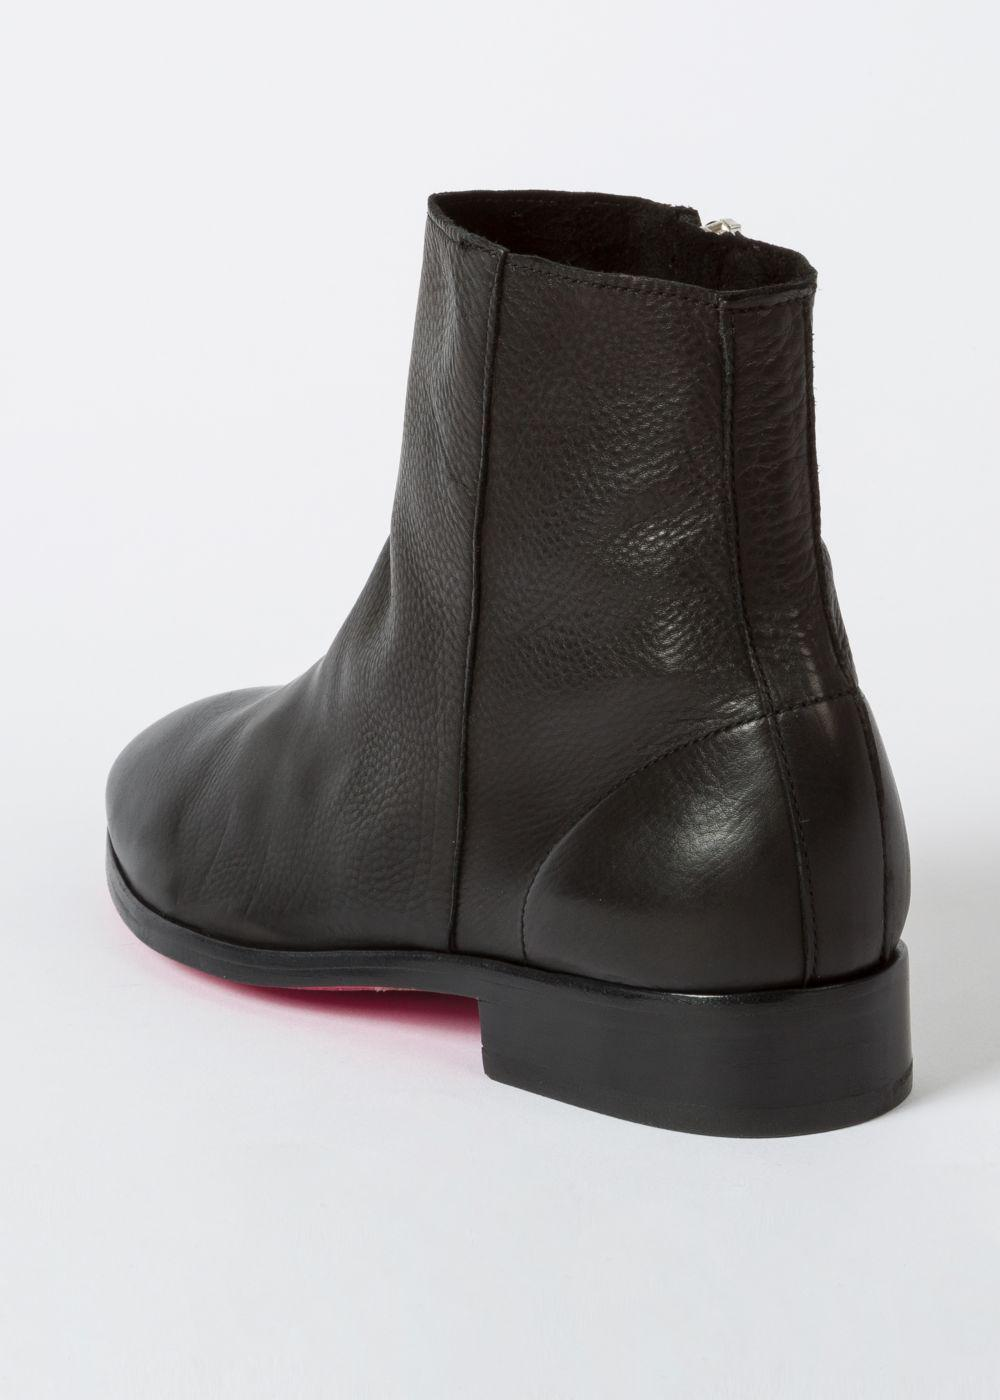 Paul Smith Women's Black Leather 'brooklyn' Boots